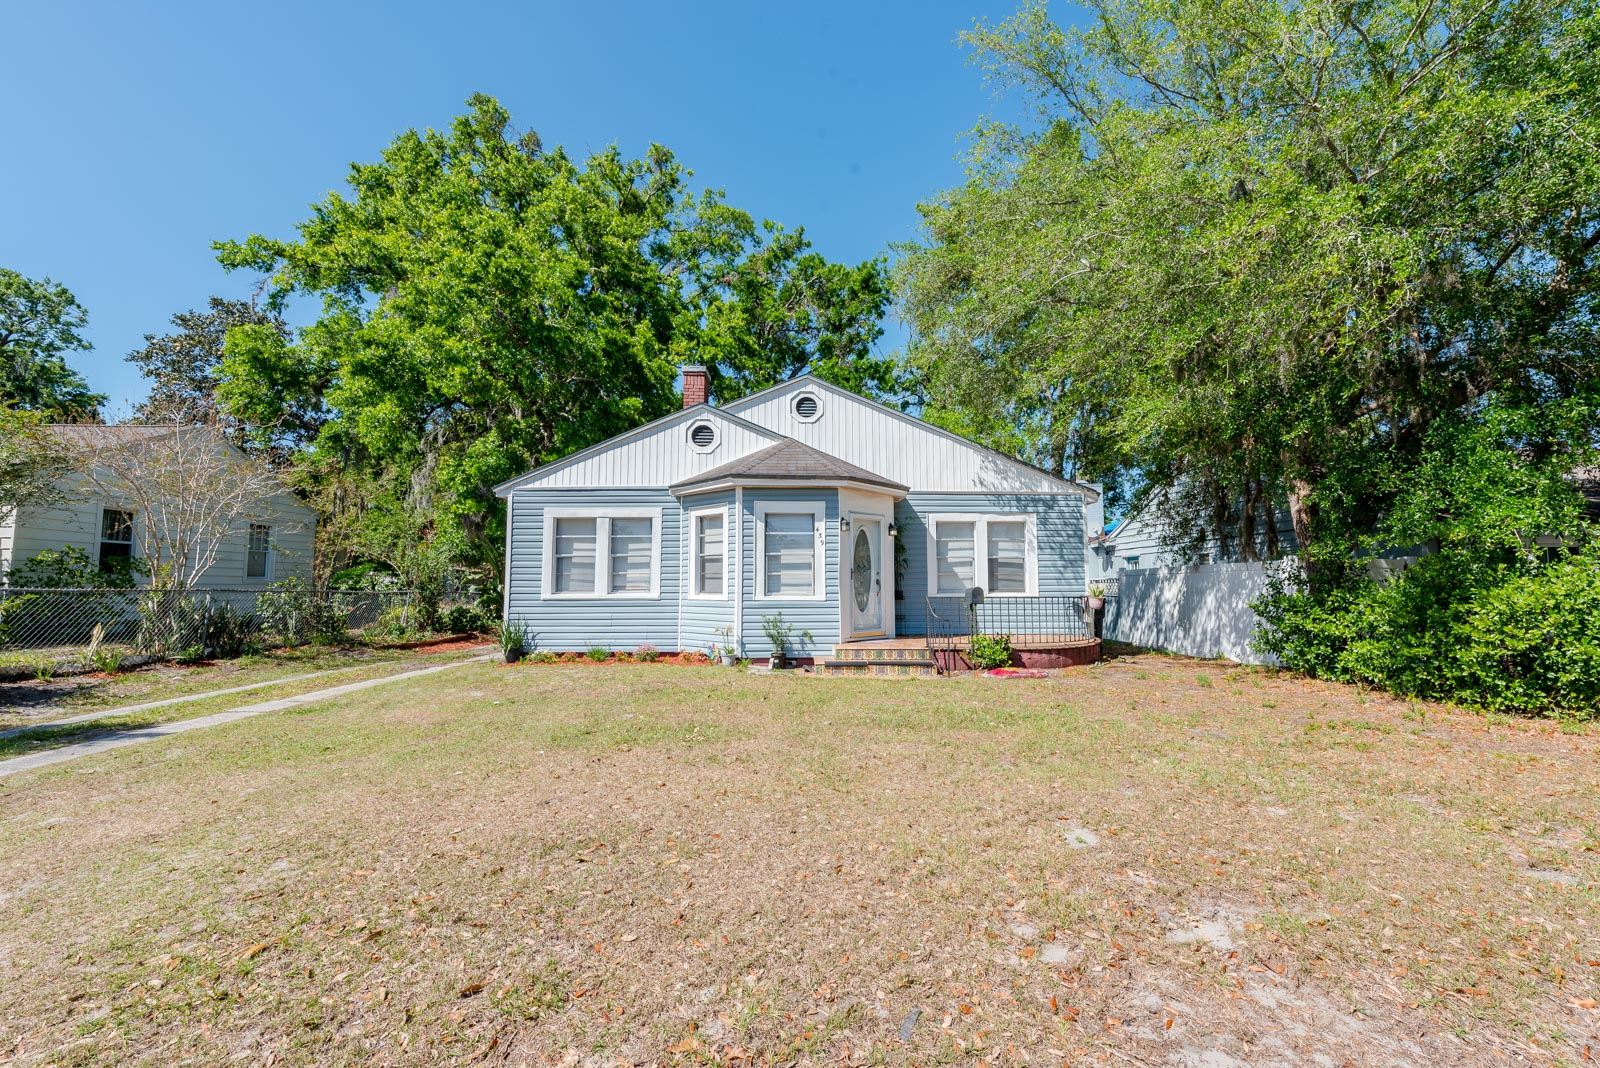 Live near the best Orlando has to offer! This lovely bungalow is in a spacious lot near Downtown Orlando showcasing a perfect IN LAW SUITE. Zoned for SHORT TERM RENTALS. Whether you're a first time home buyer, looking to downsize or investor, you'll appreciate this perfect sized home!